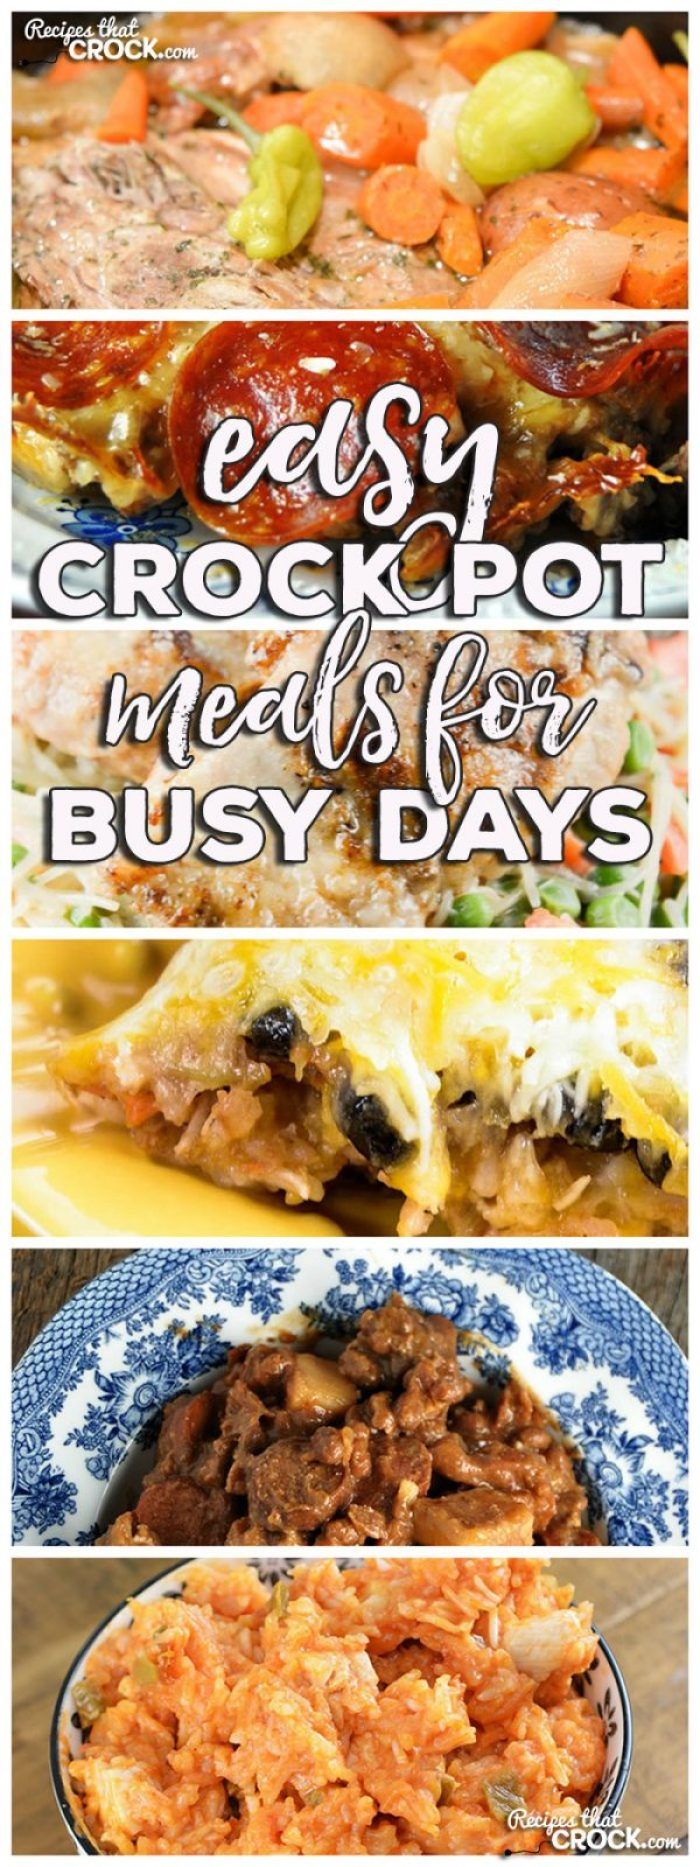 This week for our Friday Favoriteswe have some yummy Easy Crock Pot Meals for Busy Days like Crock Pot Crustless Pizza,Slow Cooker Mississippi Pork Roast with Vegetables,Crock Pot Nacho Chicken and Rice,Crock Pot Mexican Rice Veggie Bake,Easy Chicken Crock Pot Dinner for Two andCrock Pot Chuck Wagon Stew.